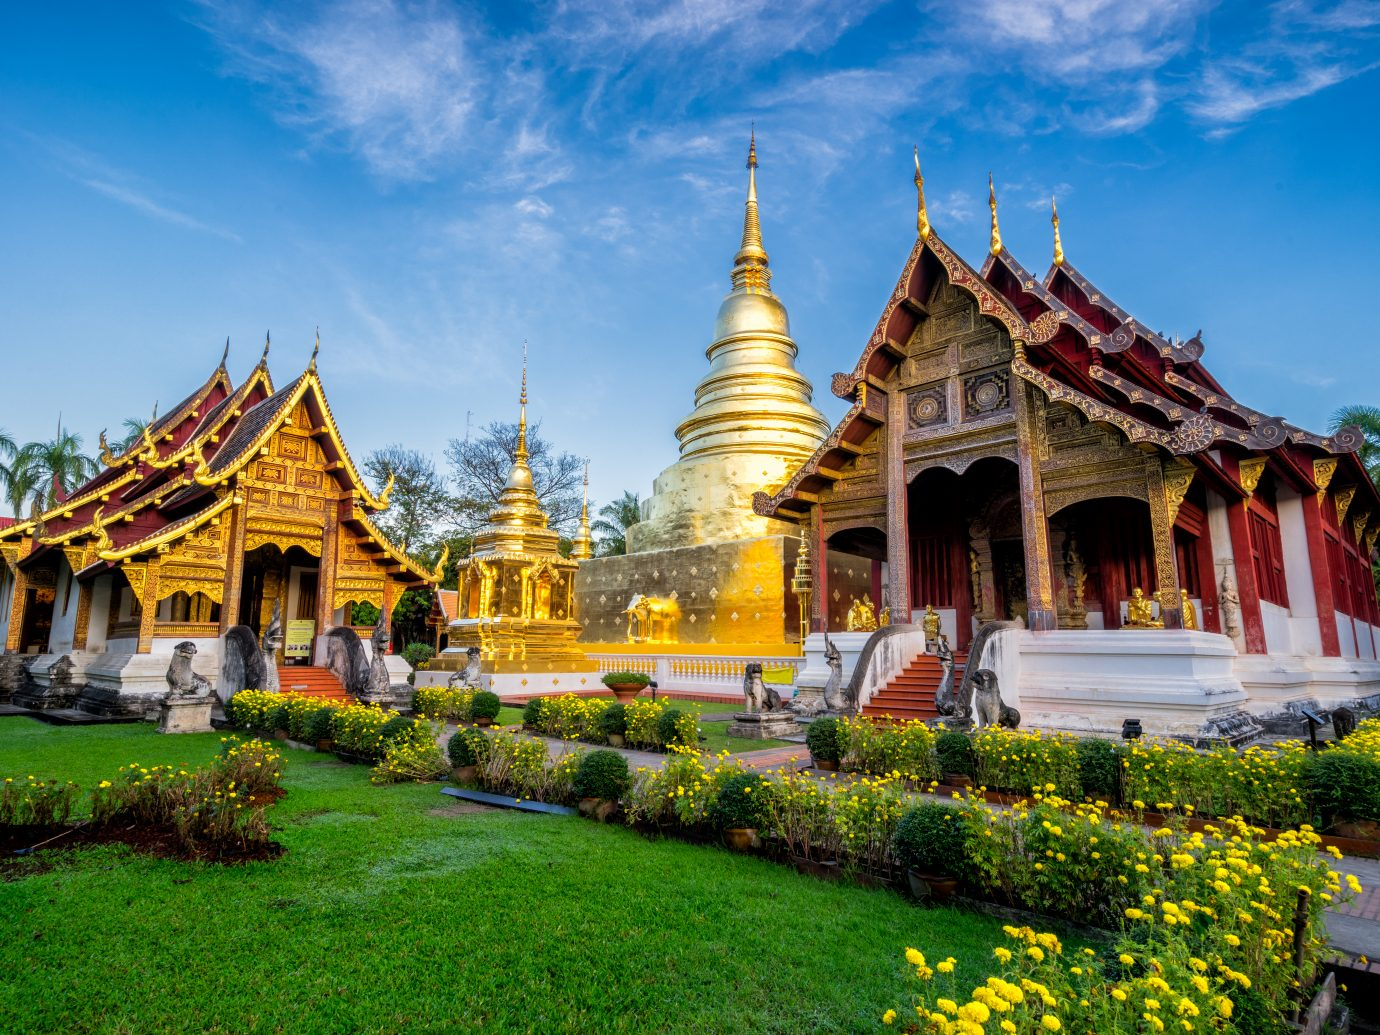 Sunrise scence of Wat Phra Singh temple. in the old city center of Chiang Mai,Thailand.